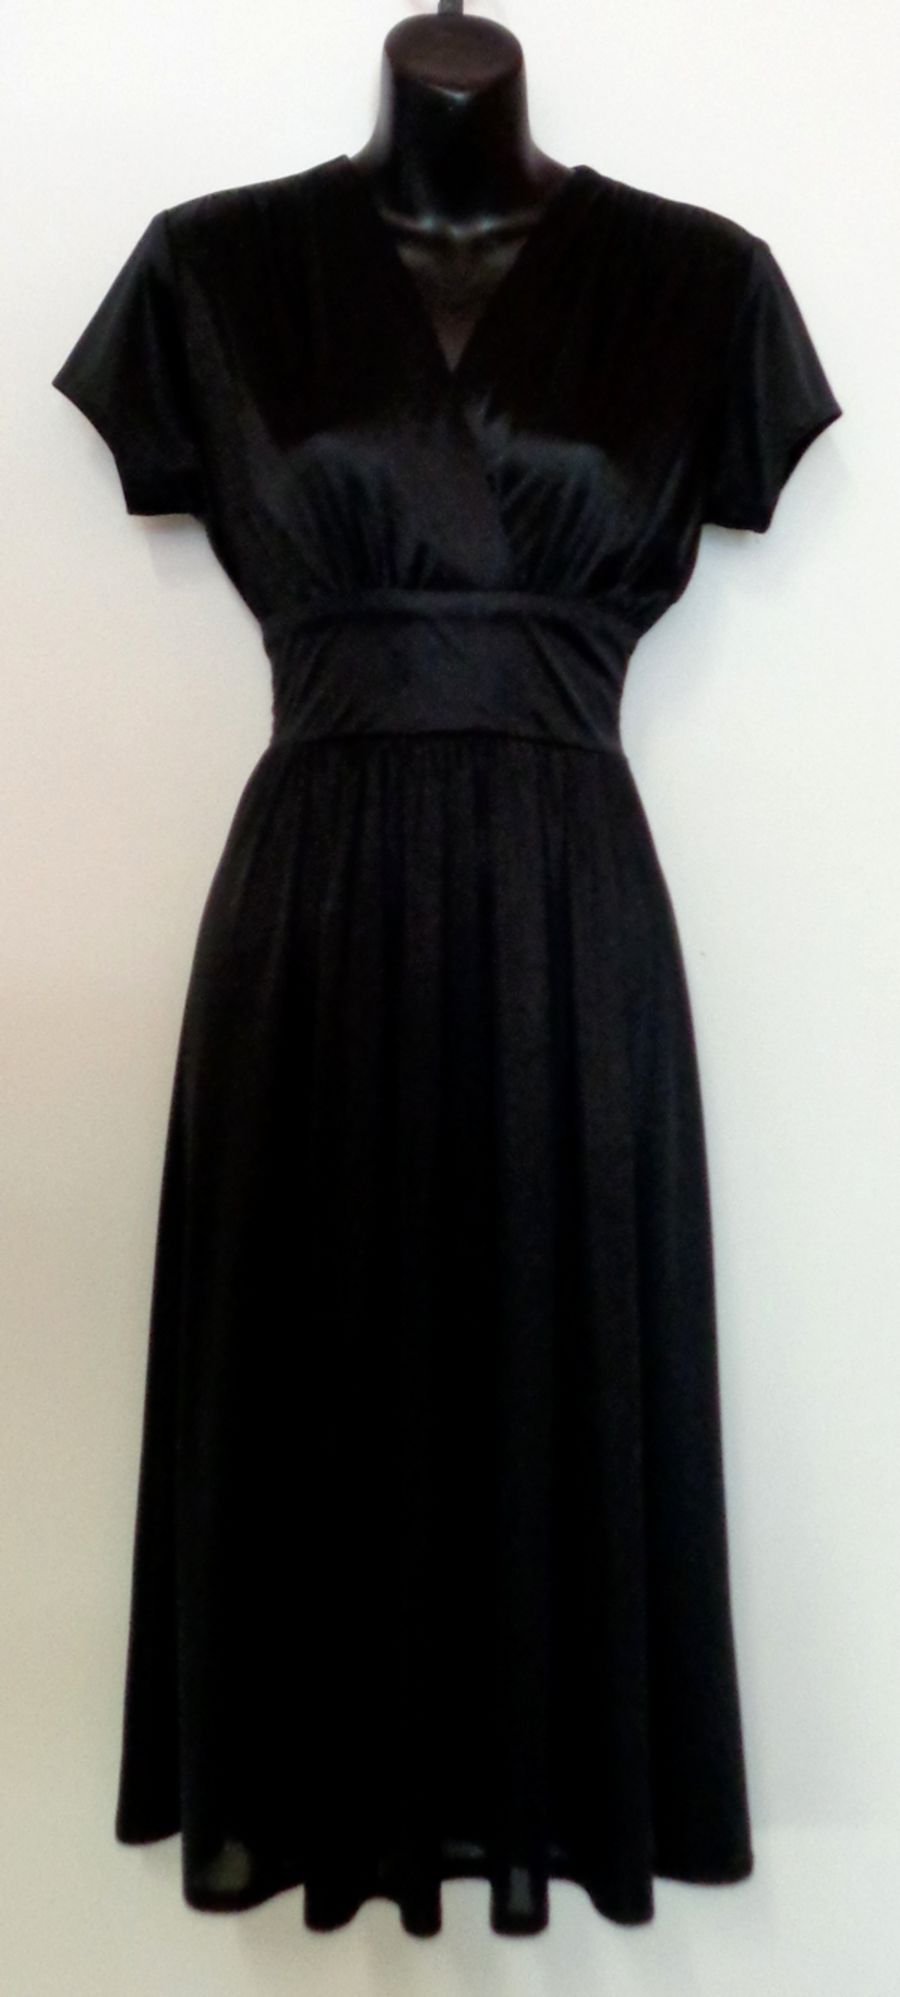 Vintage Women's 1970's Black Empire Line Wrap Midi Disco Dress